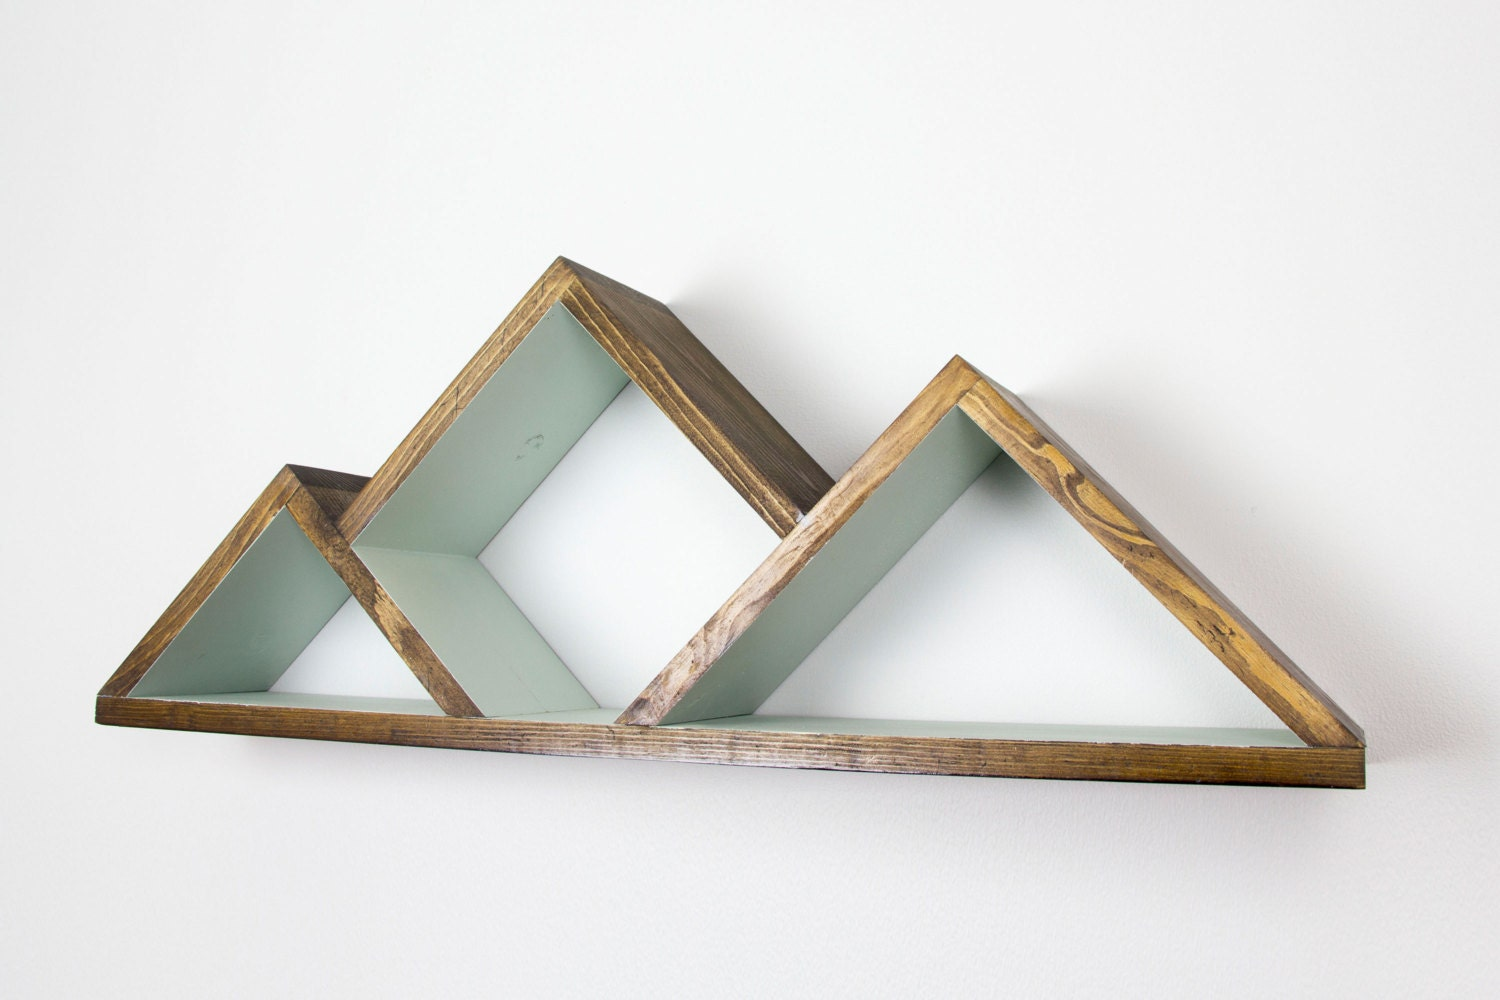 Geometric mountain shelf shelves by graincustomwoodworks for Mountain shelf diy